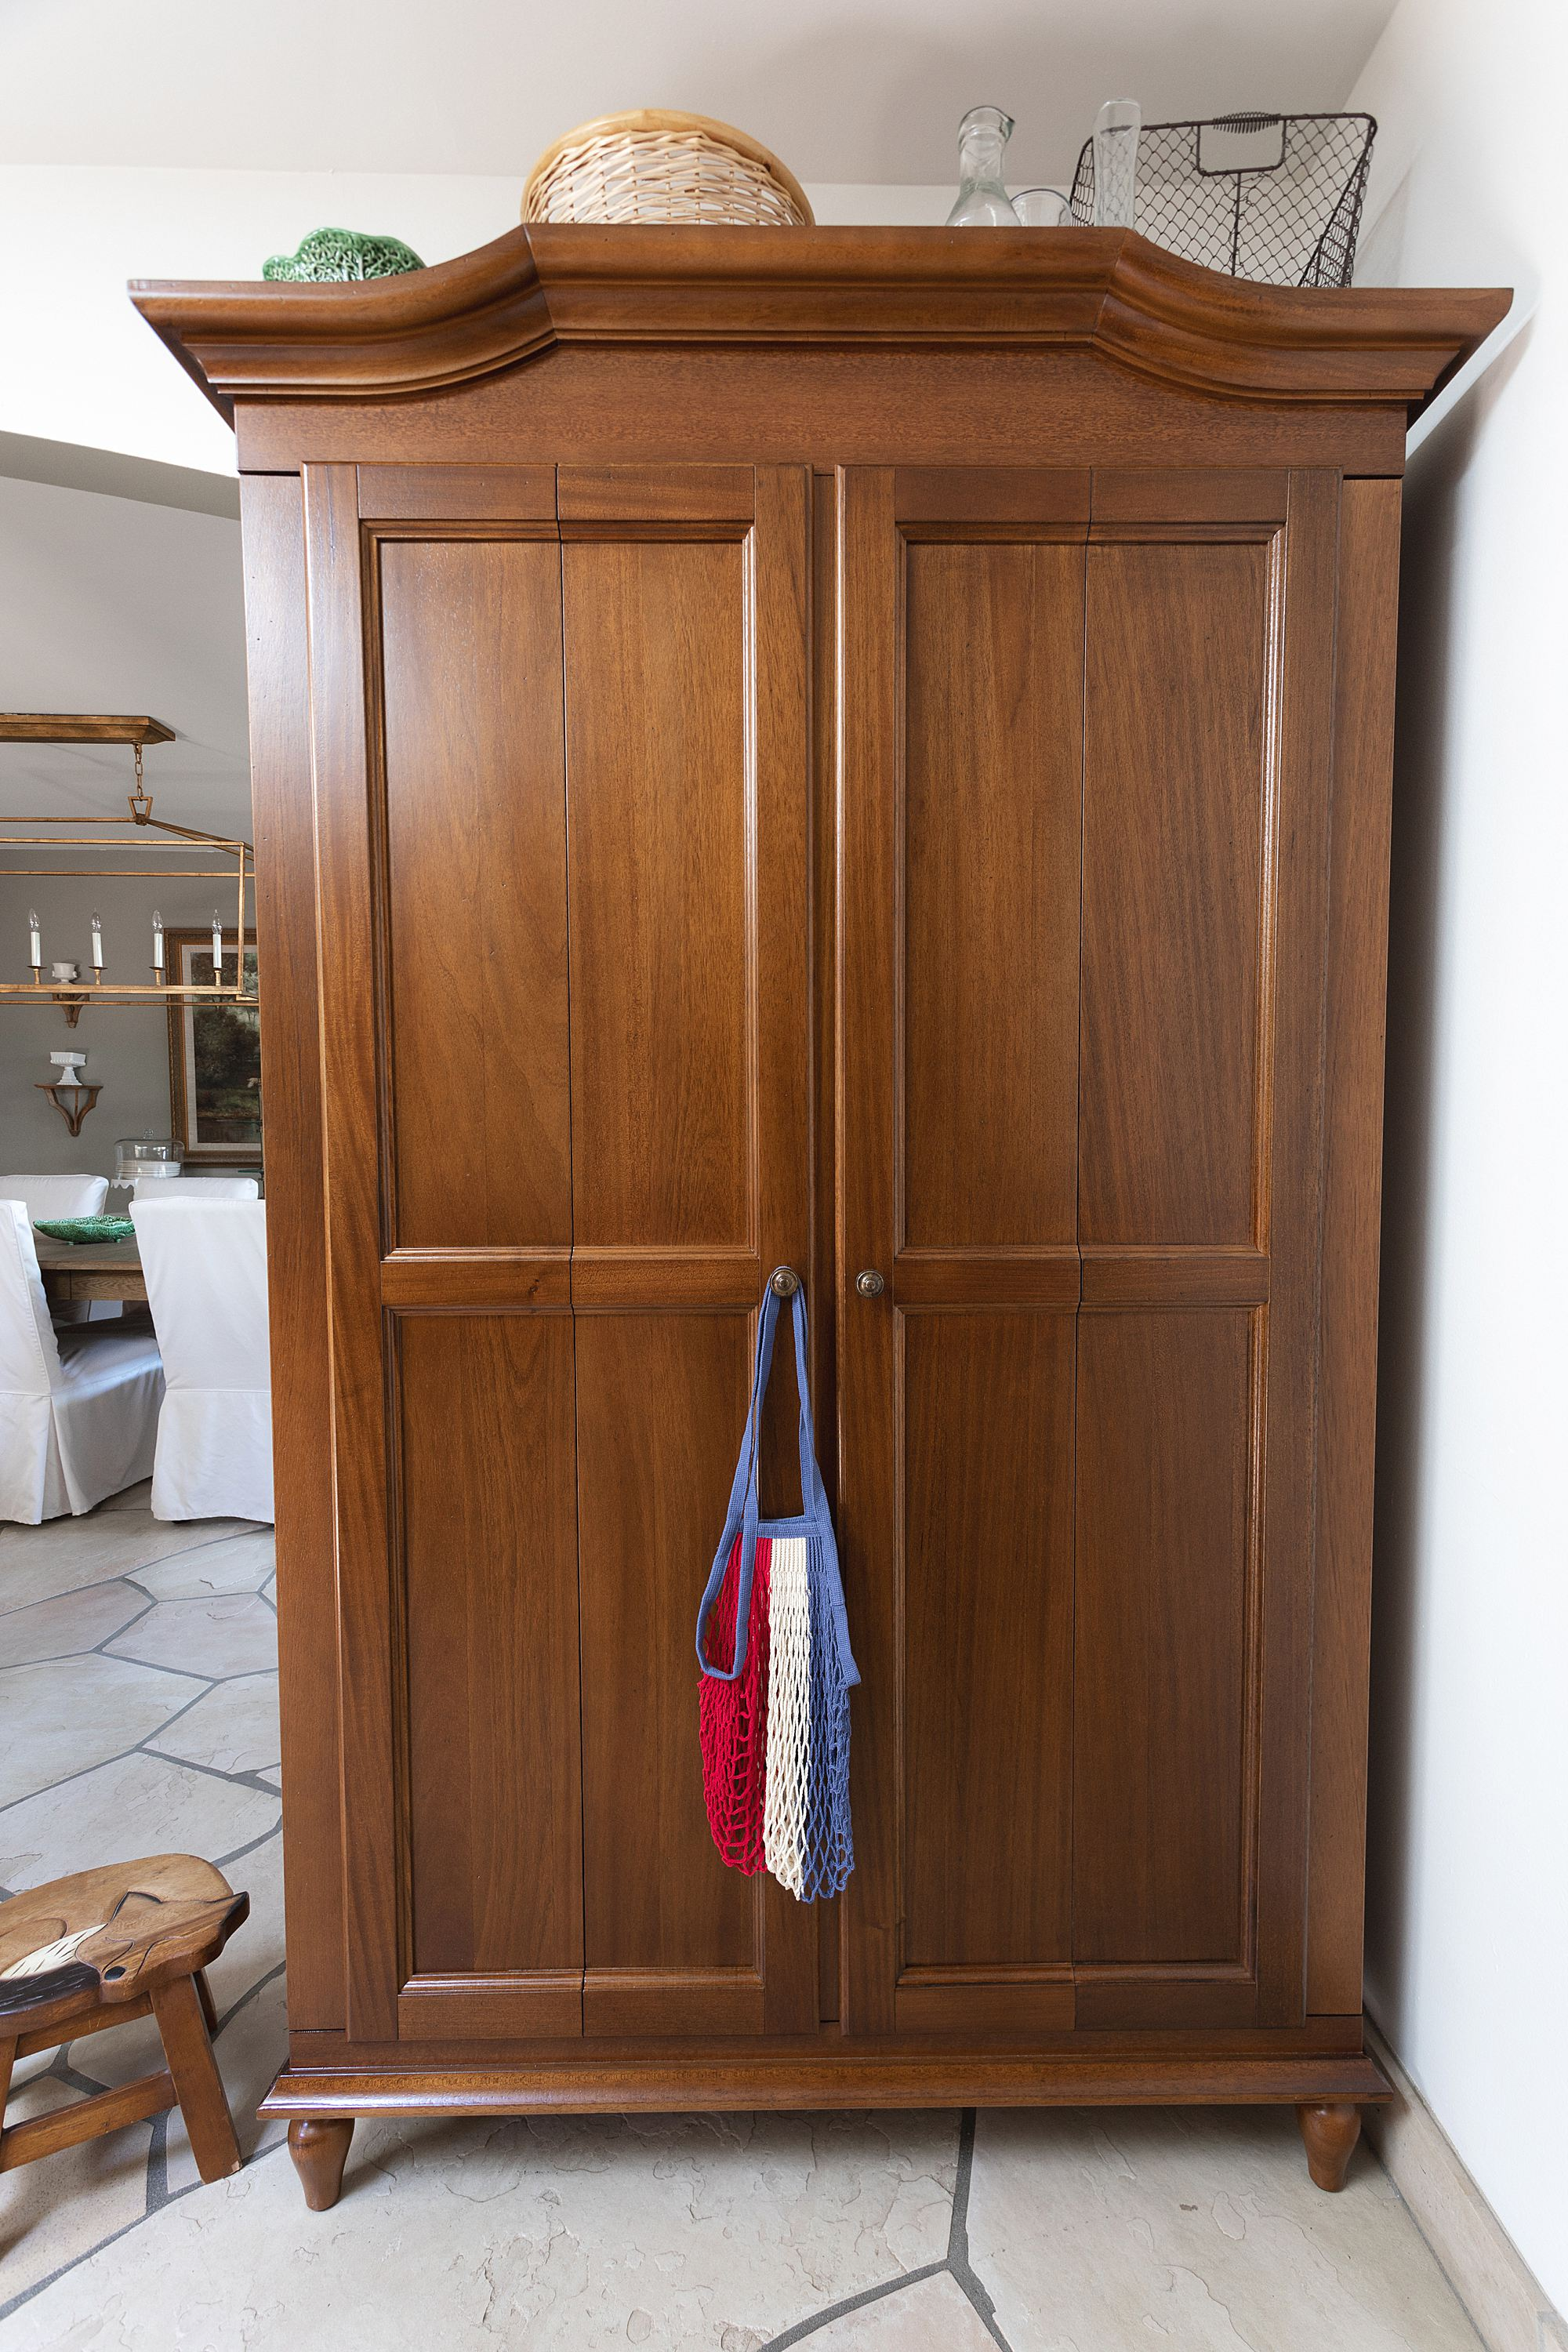 kitchen armoire pantry from Ballard Designs brown furniture wood